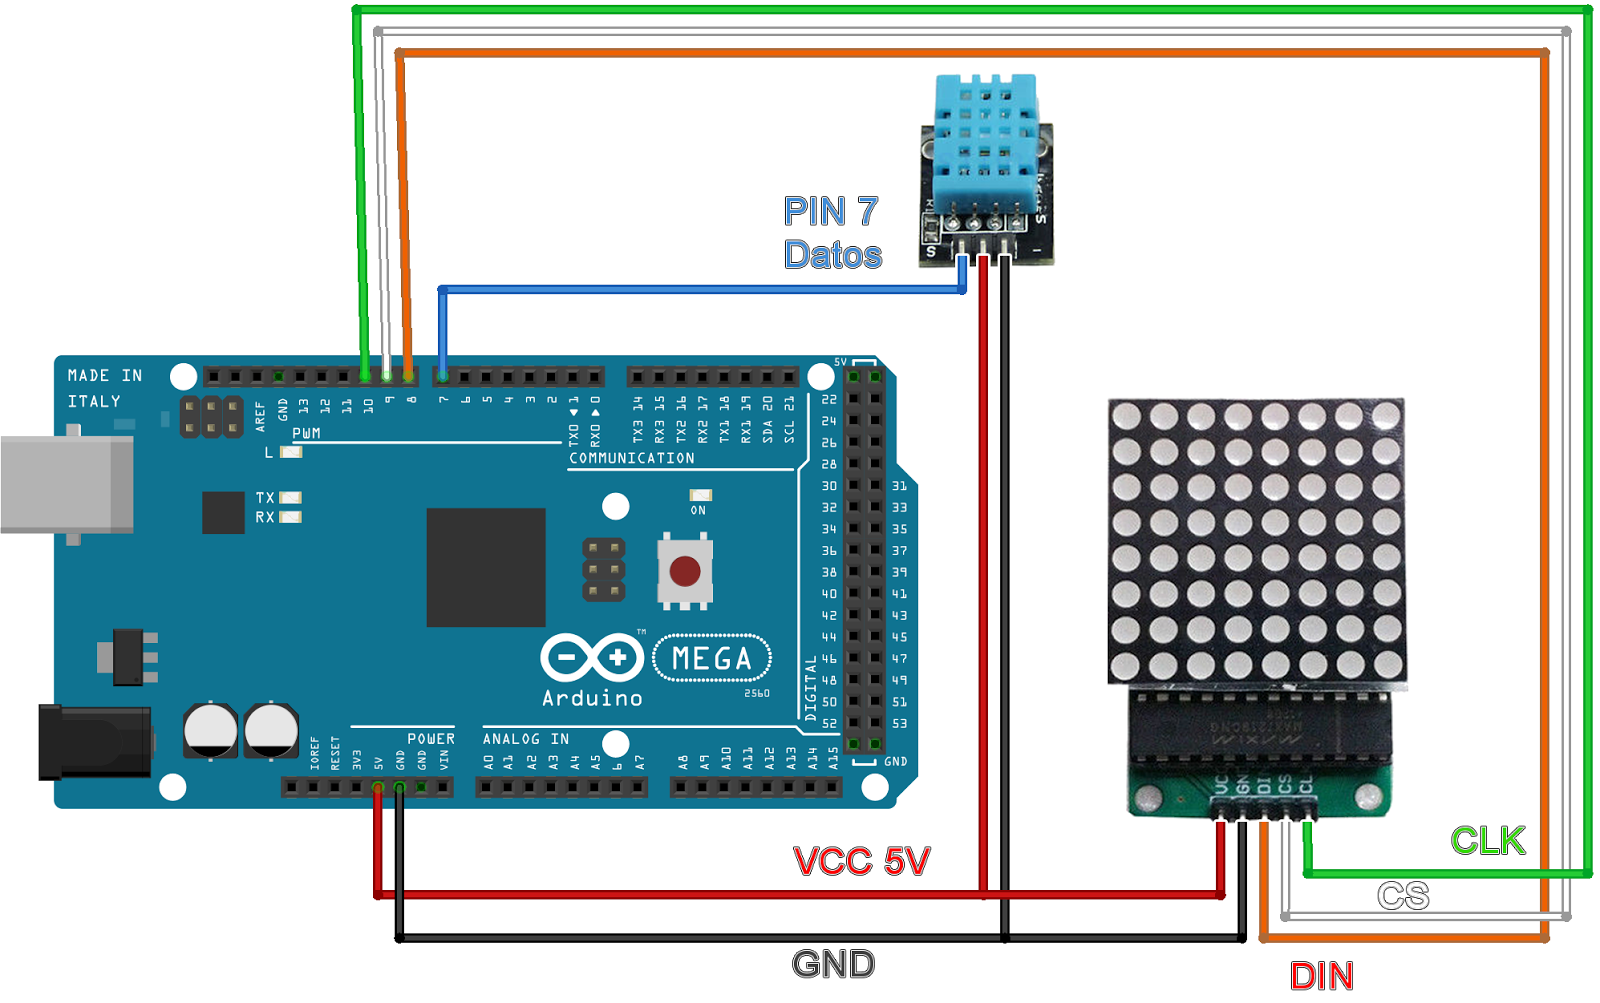 How do I install the firmware on an Arduino Mega clone?